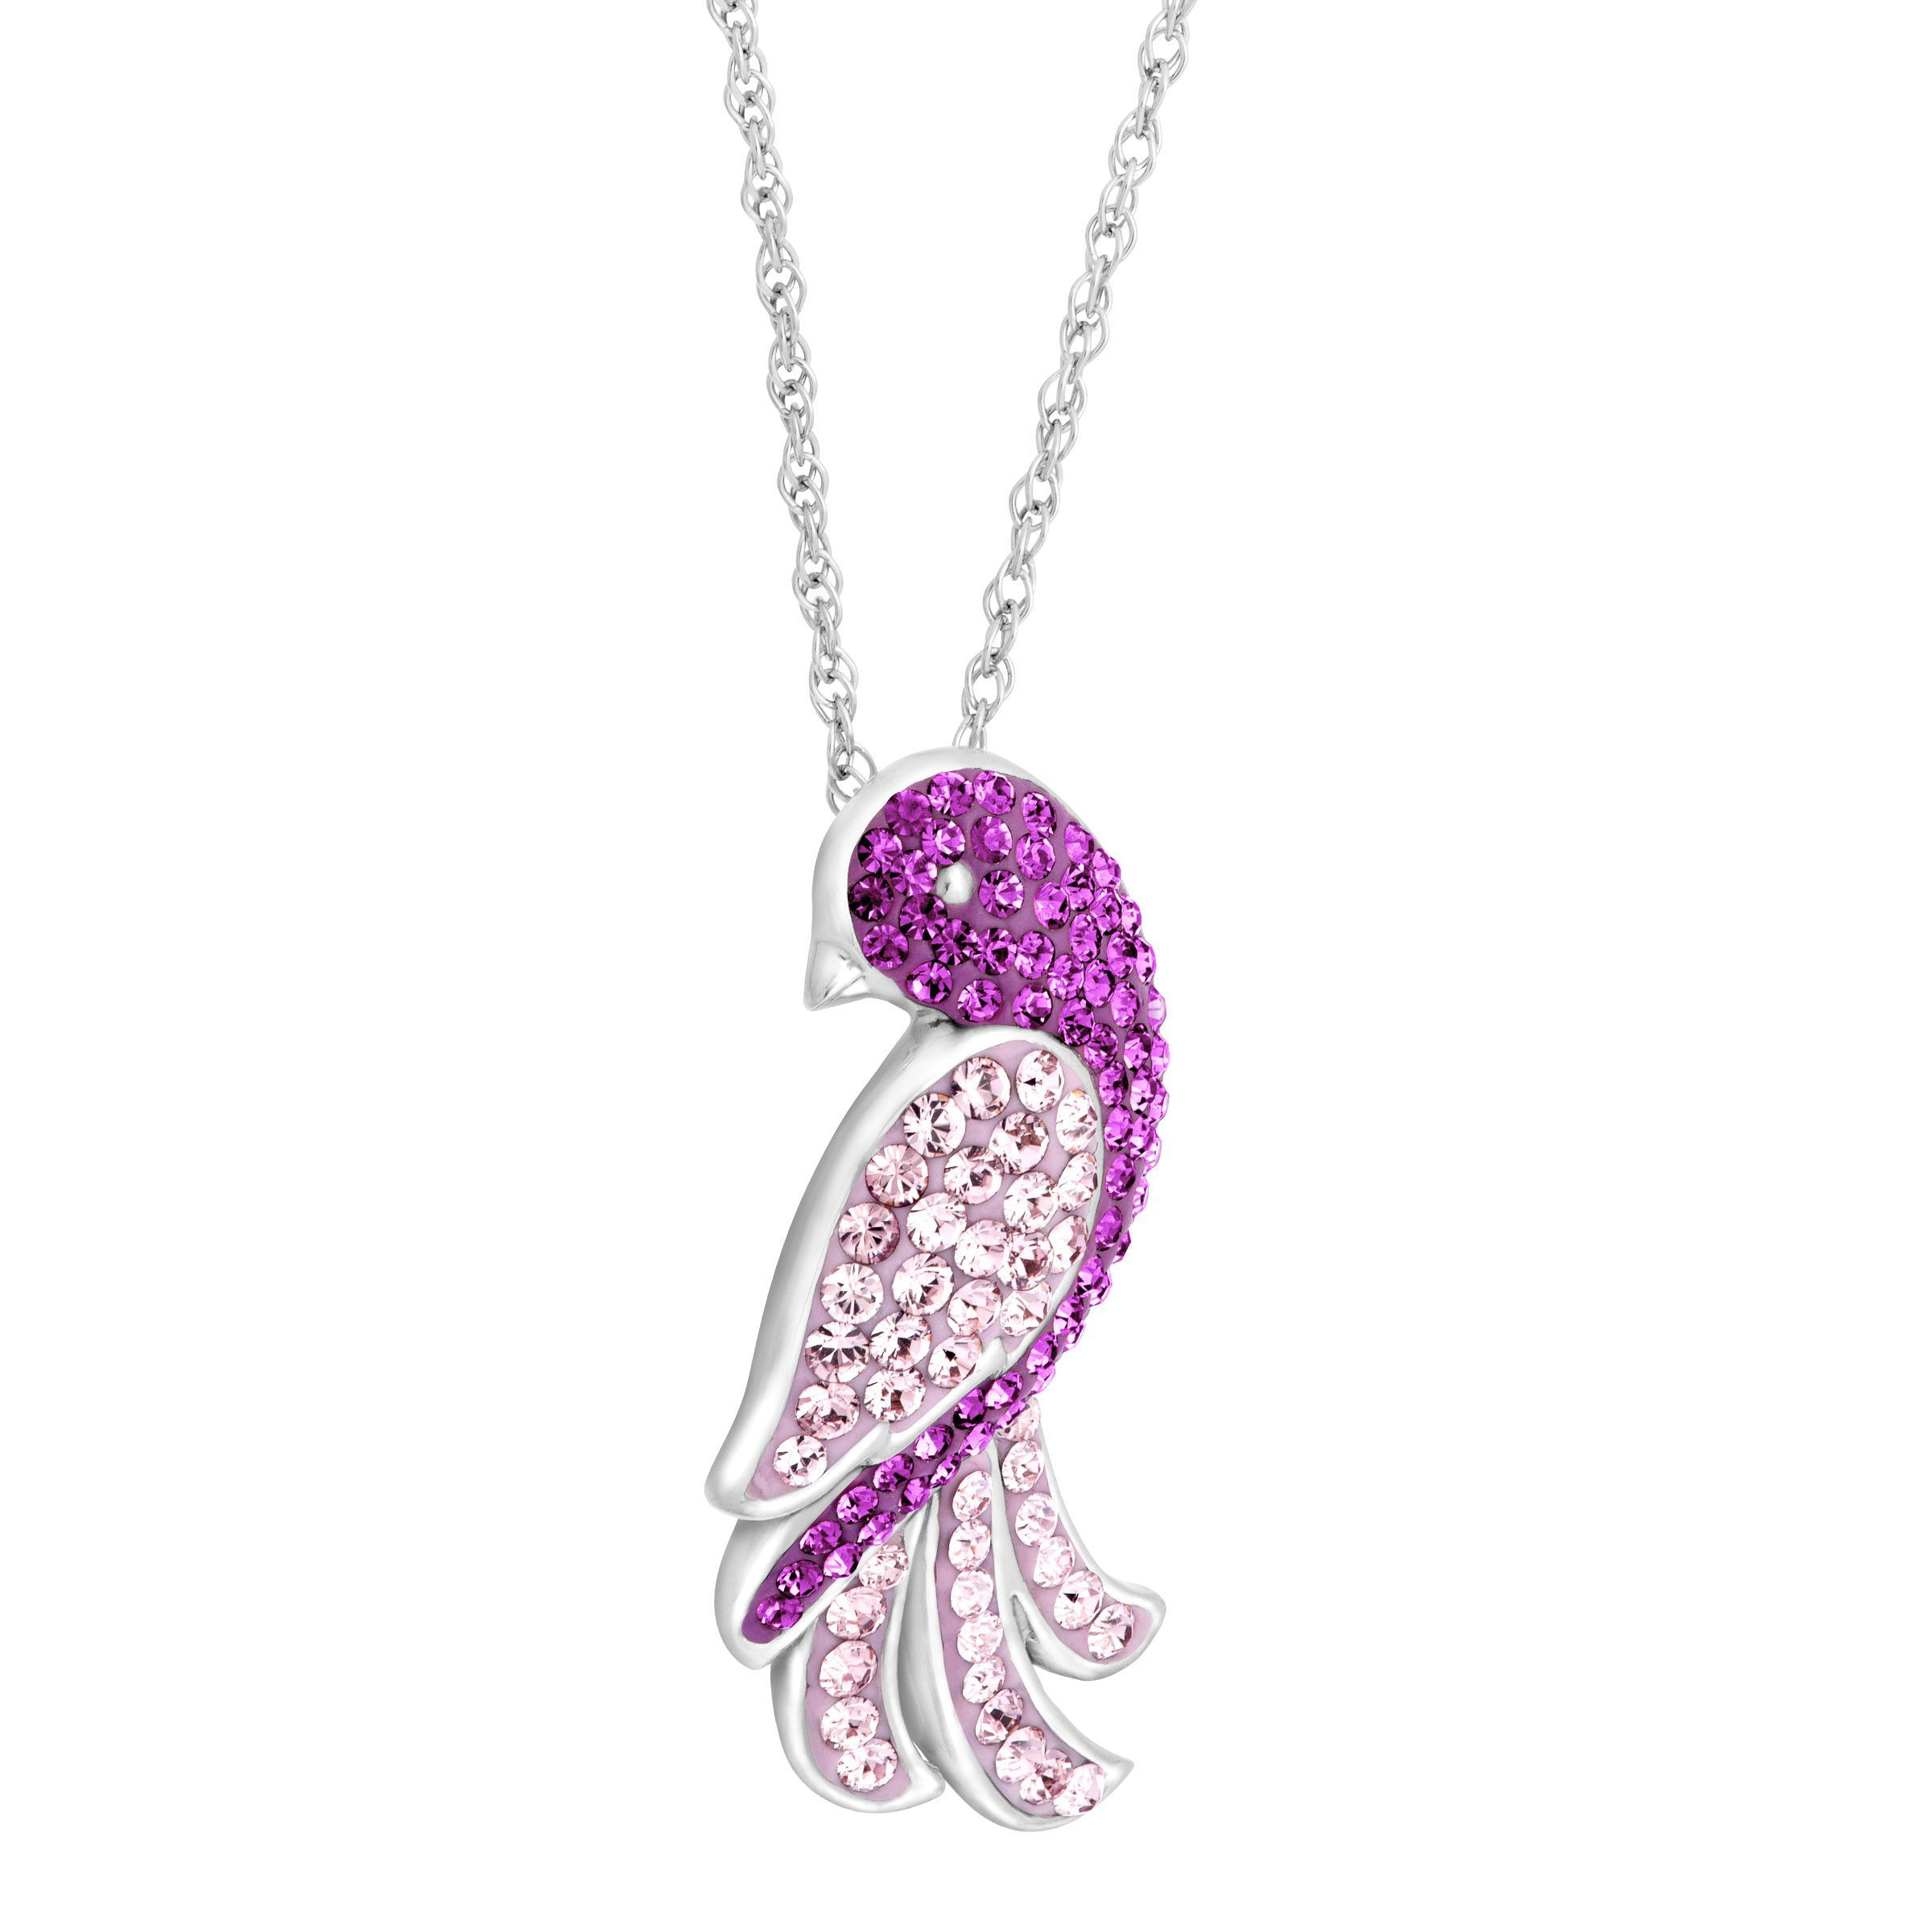 a2066a99f983 Crystaluxe Bird Pendant with Purple Swarovski Crystals in Sterling Silver